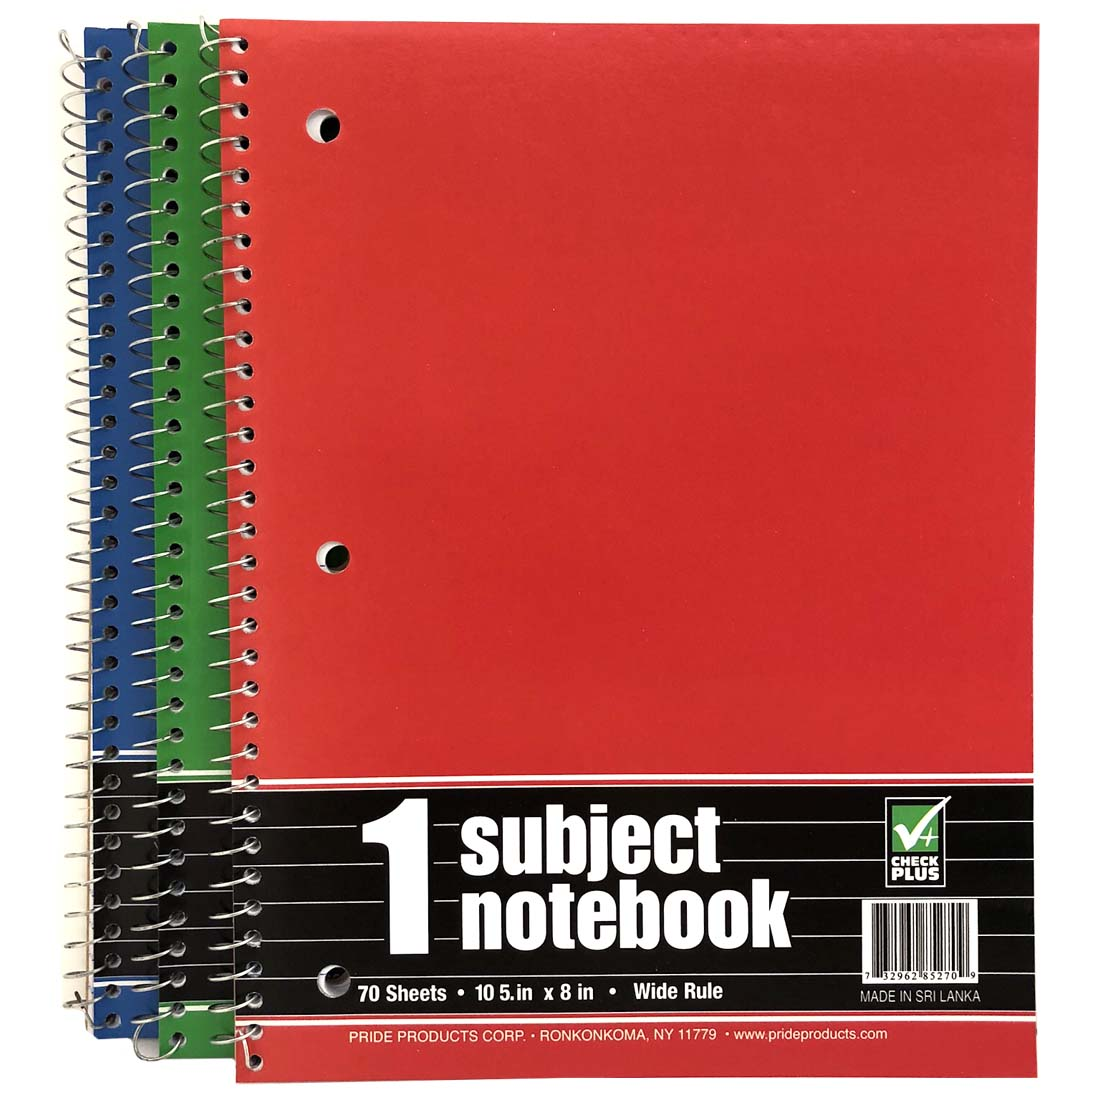 View CHECK PLUS 1 SUBJECT NOTEBOOK 70 SHEETS 8 X 10.5 INCH WIDE RULED ASTD COLORS